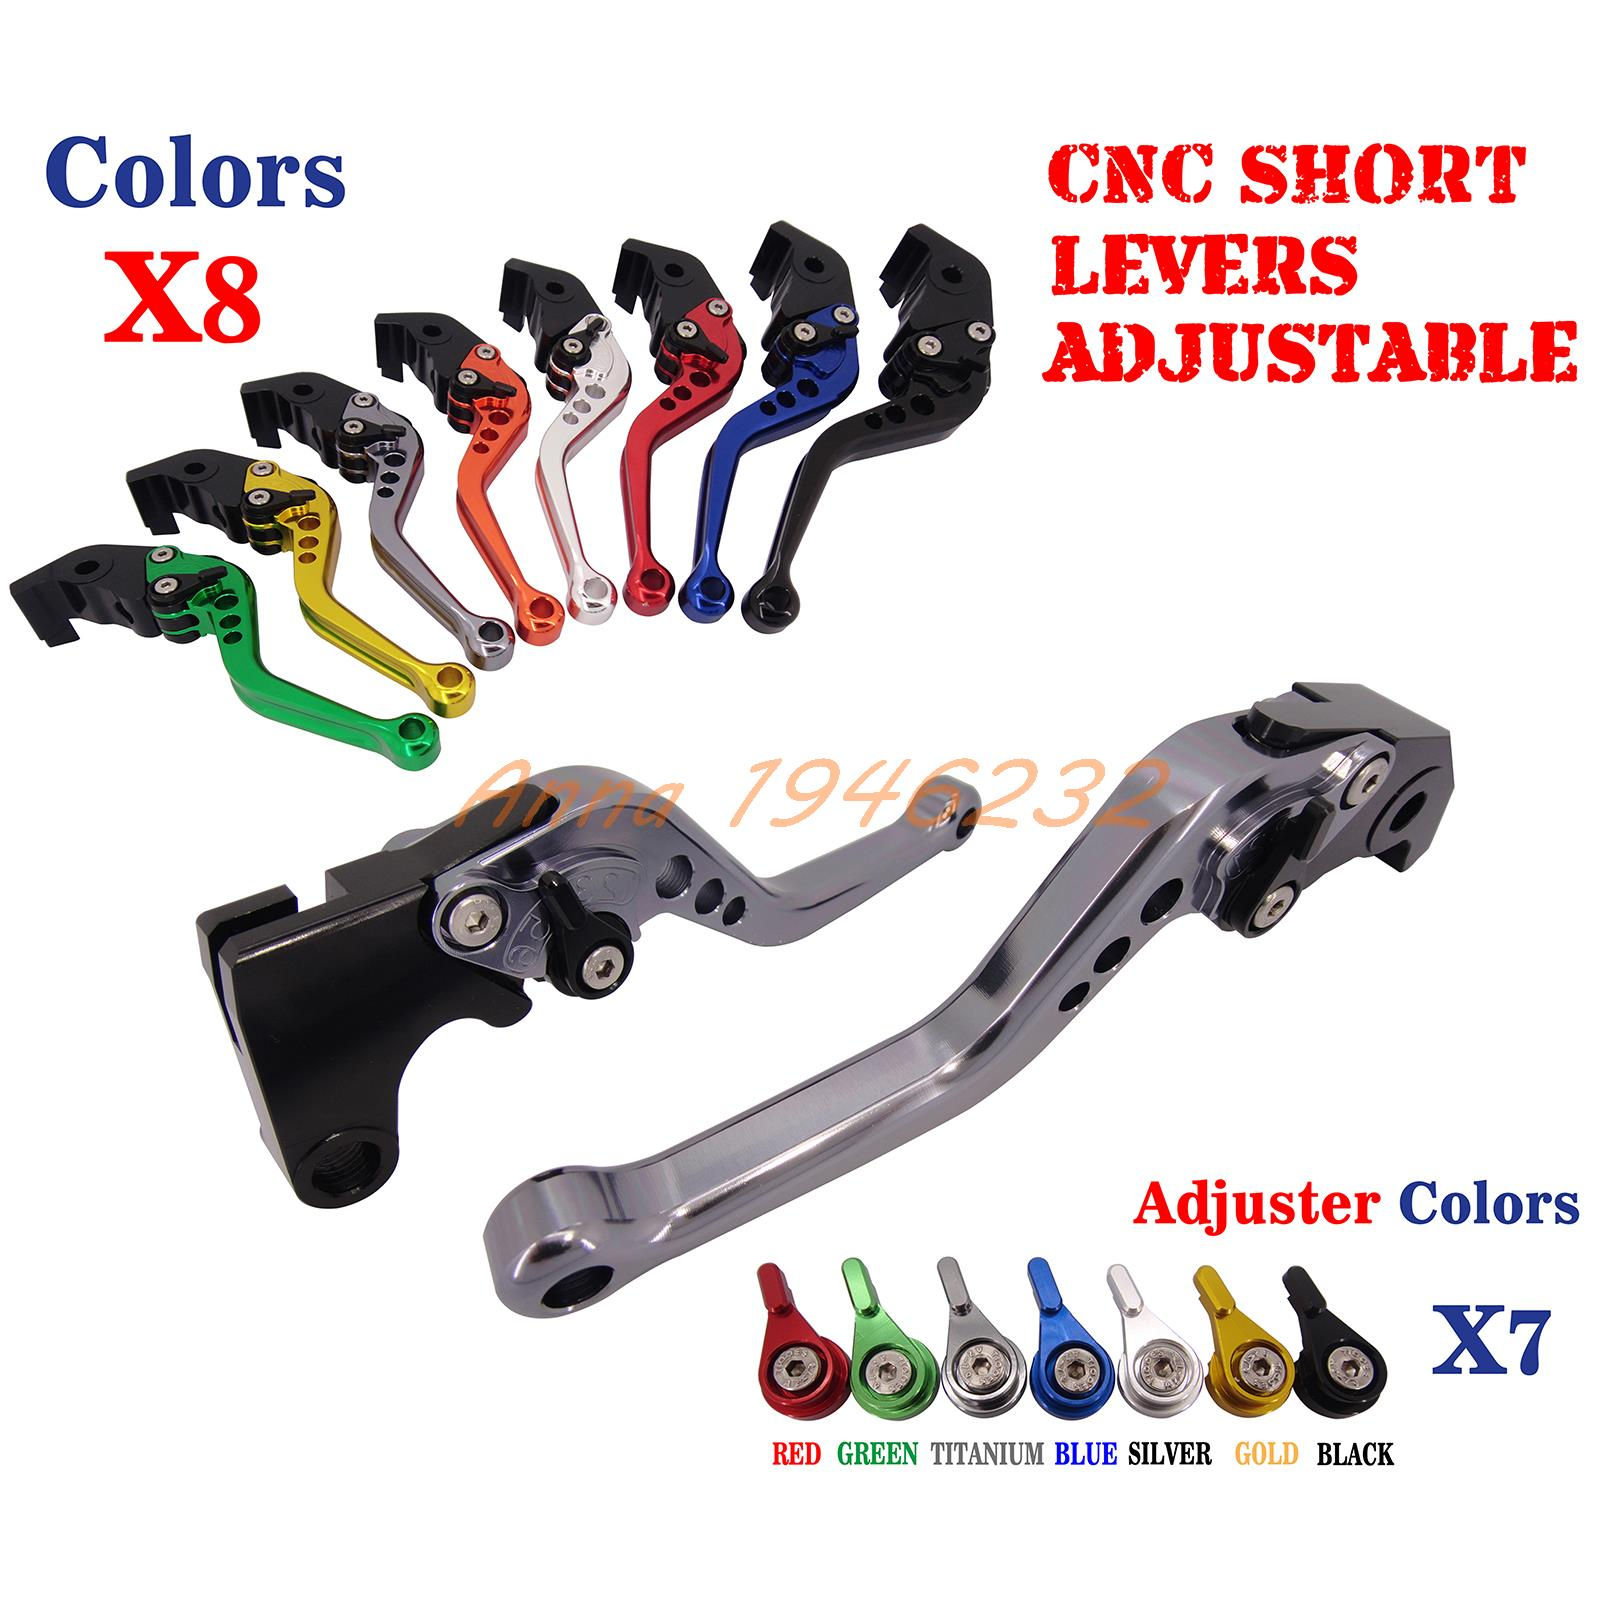 CNC Short Adjustable Brake Clutch Lever For Yamaha XJR400 1993-2007 FZ400 1997 FZS600 Fazer 1998-2003 FZS 600 NEW запчасти для мотоциклов yamaha xjr400 xjr1300 fz400